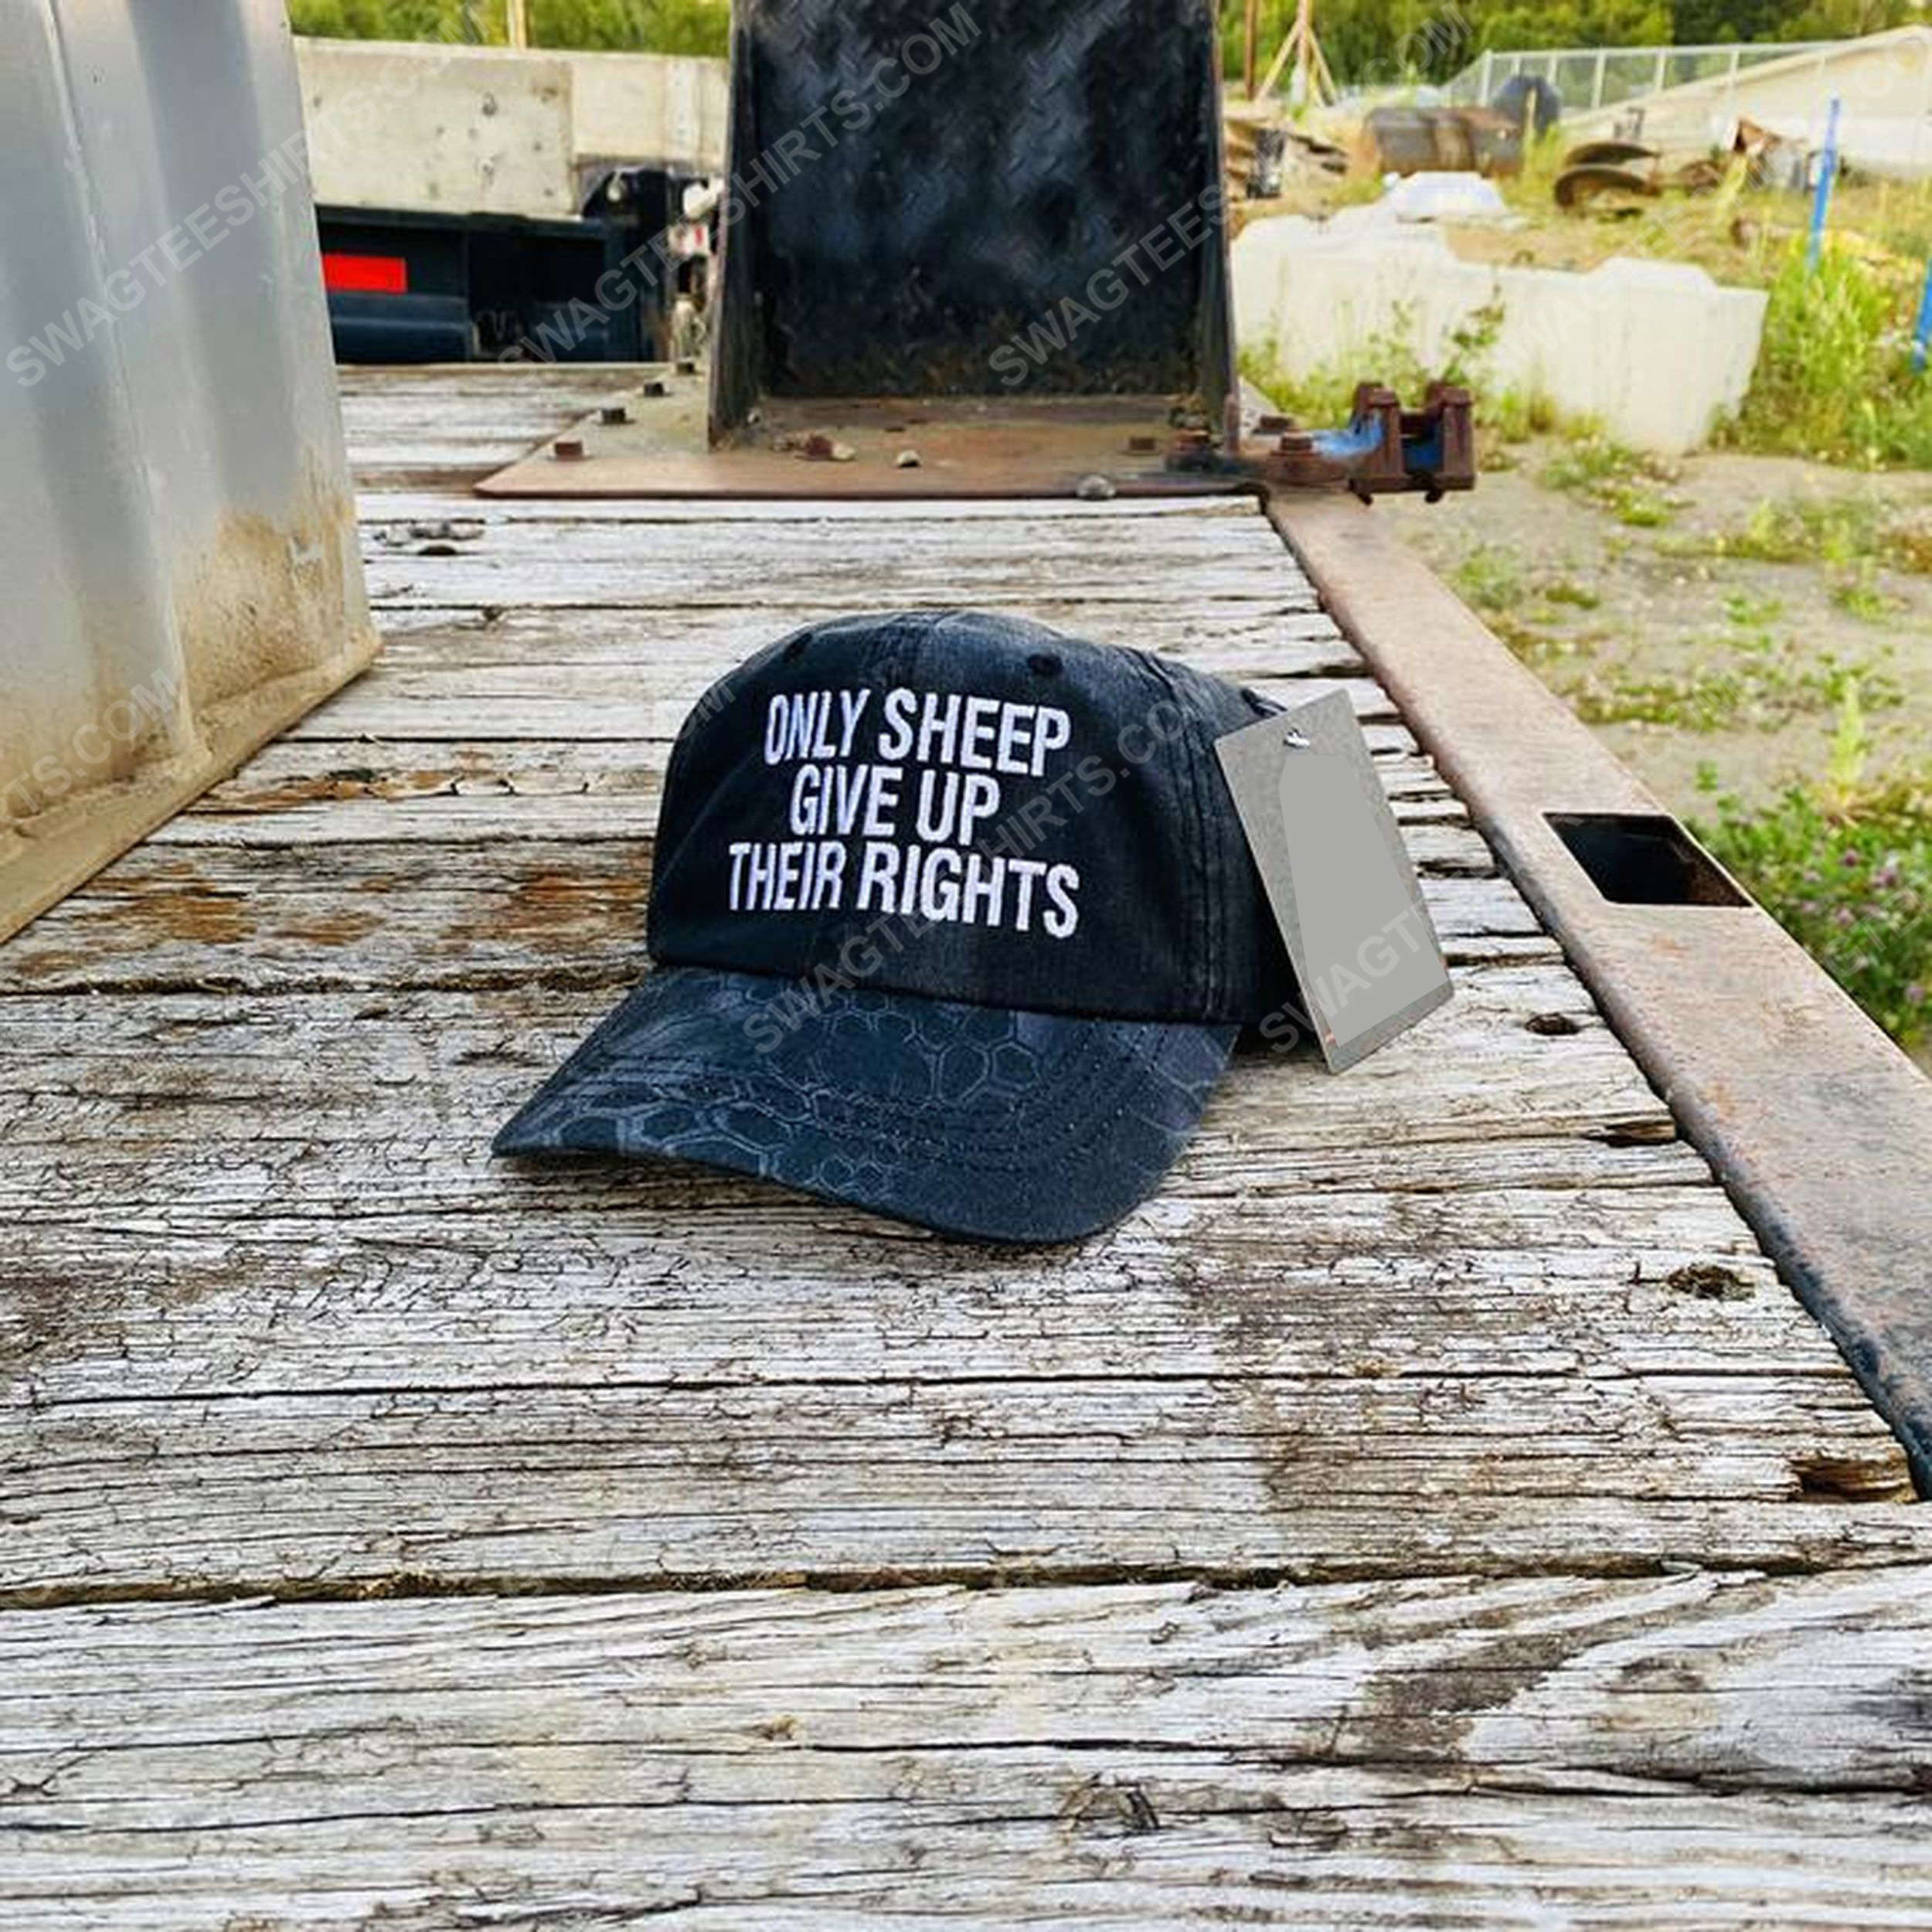 Only sheep give up their rights full print classic hat 1 - Copy